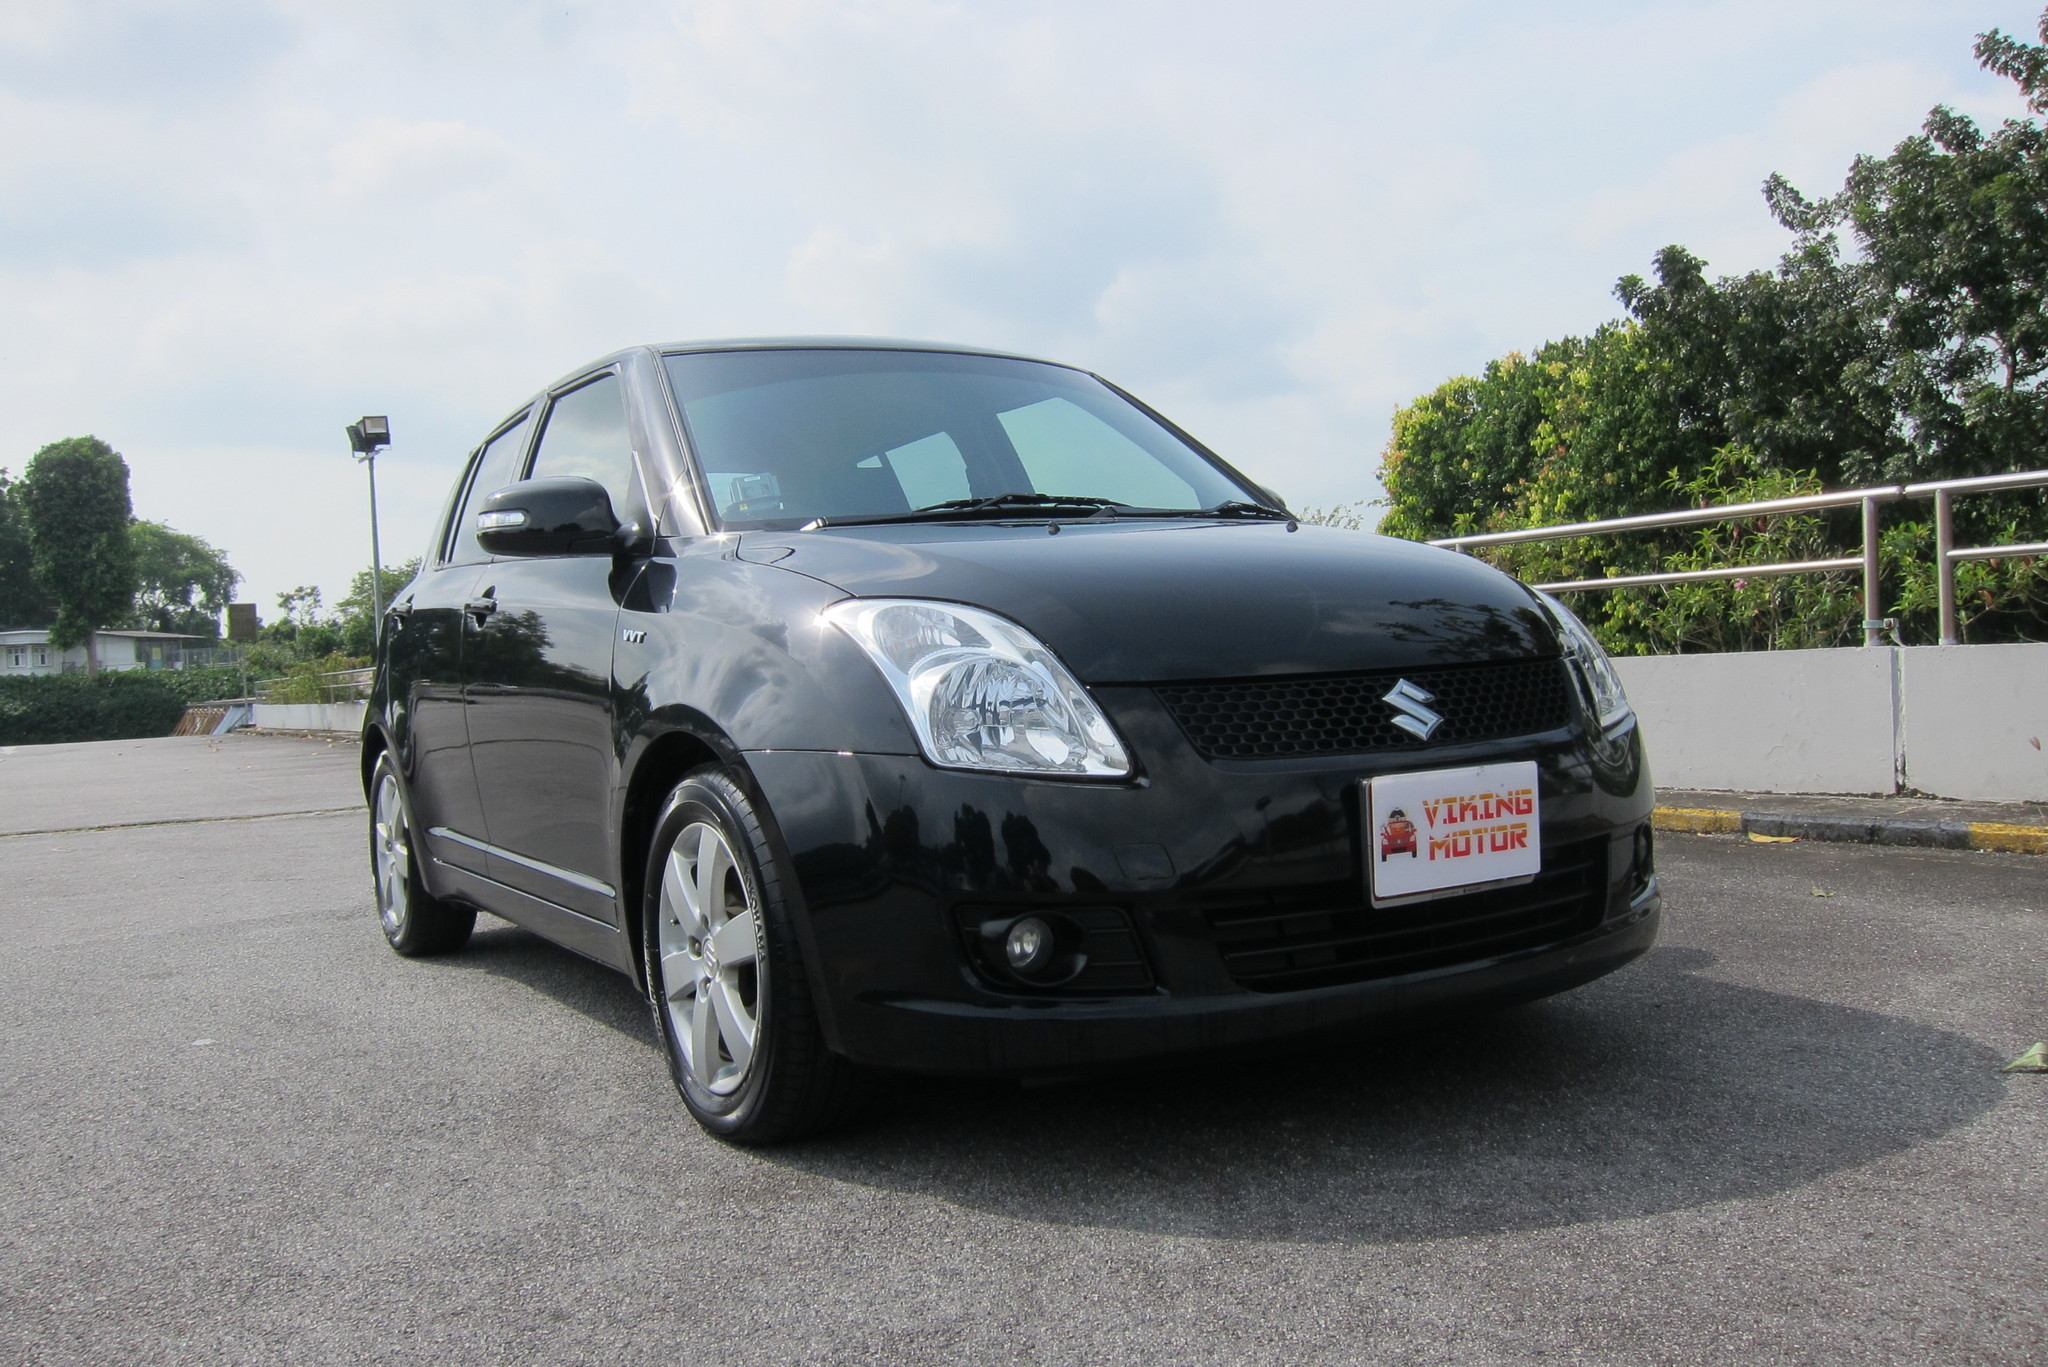 Drive Away Cars >> Suzuki Swift For Sale 3000 Drive Away Low Monthly Installment